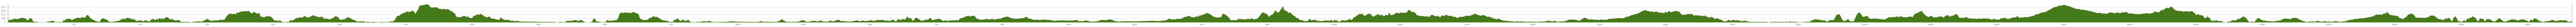 Elevation profile Land's End to John o'Groats